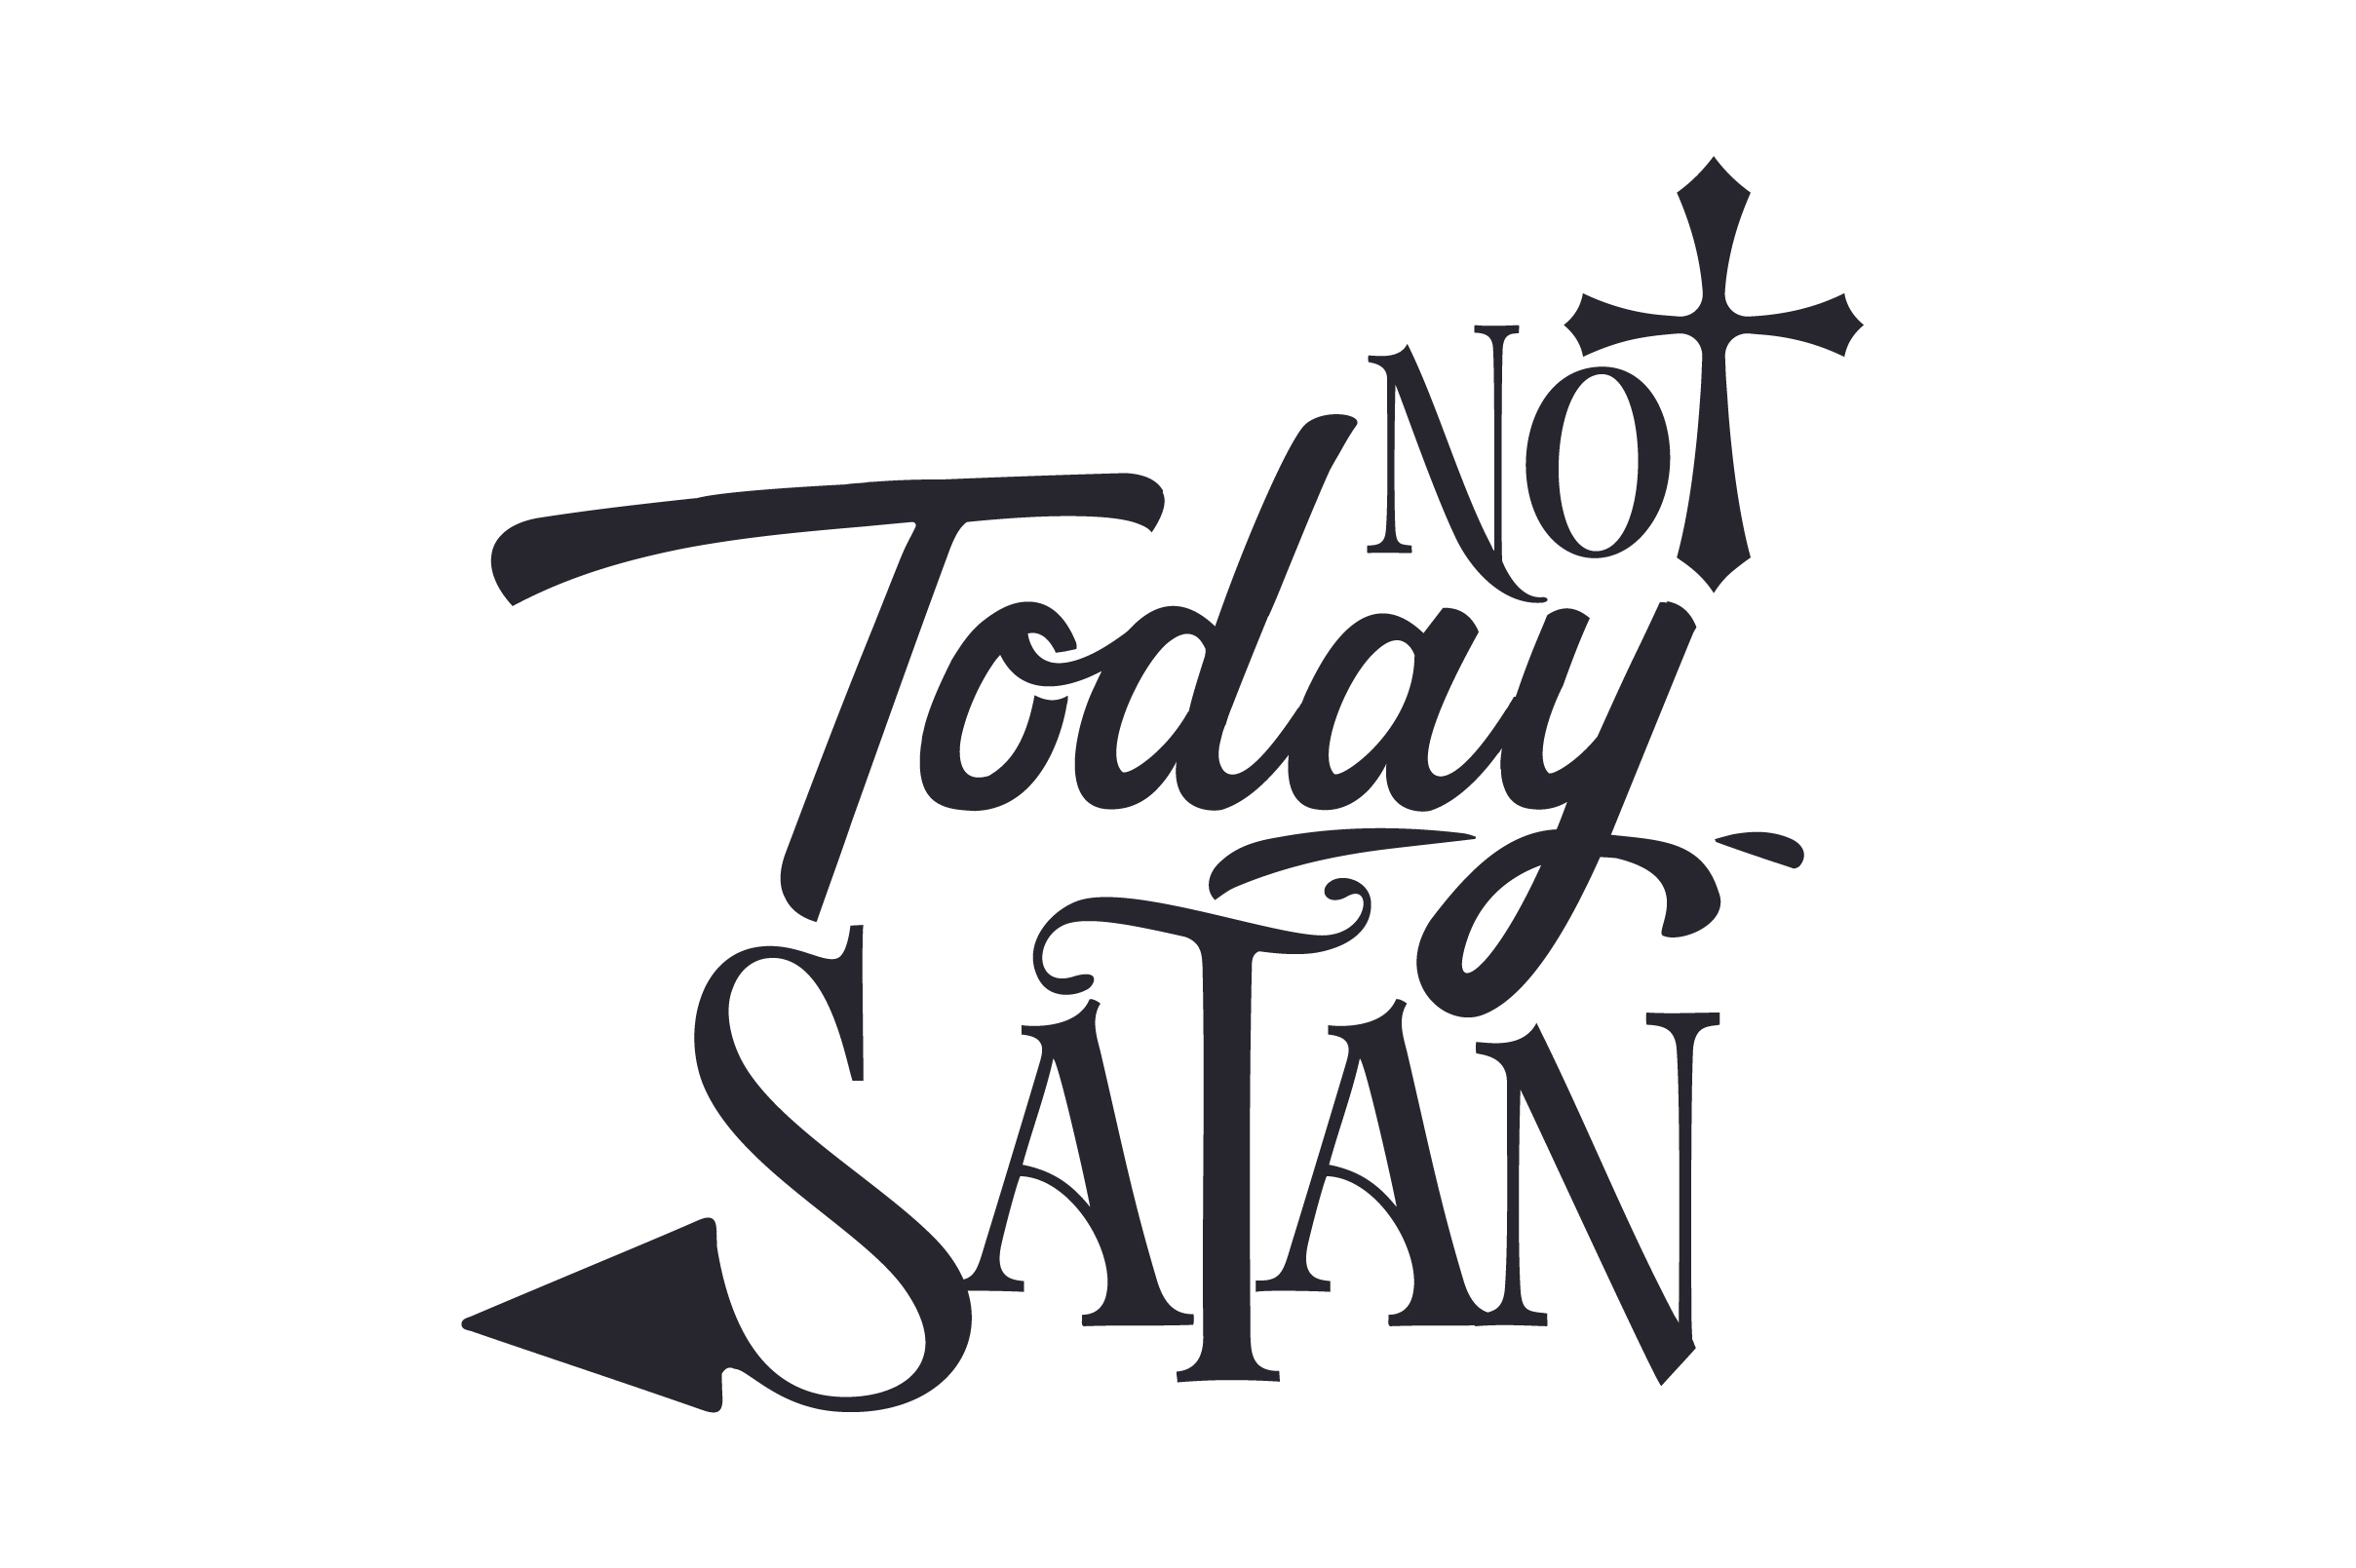 Download Free Not Today Satan Svg Cut File By Creative Fabrica Crafts for Cricut Explore, Silhouette and other cutting machines.